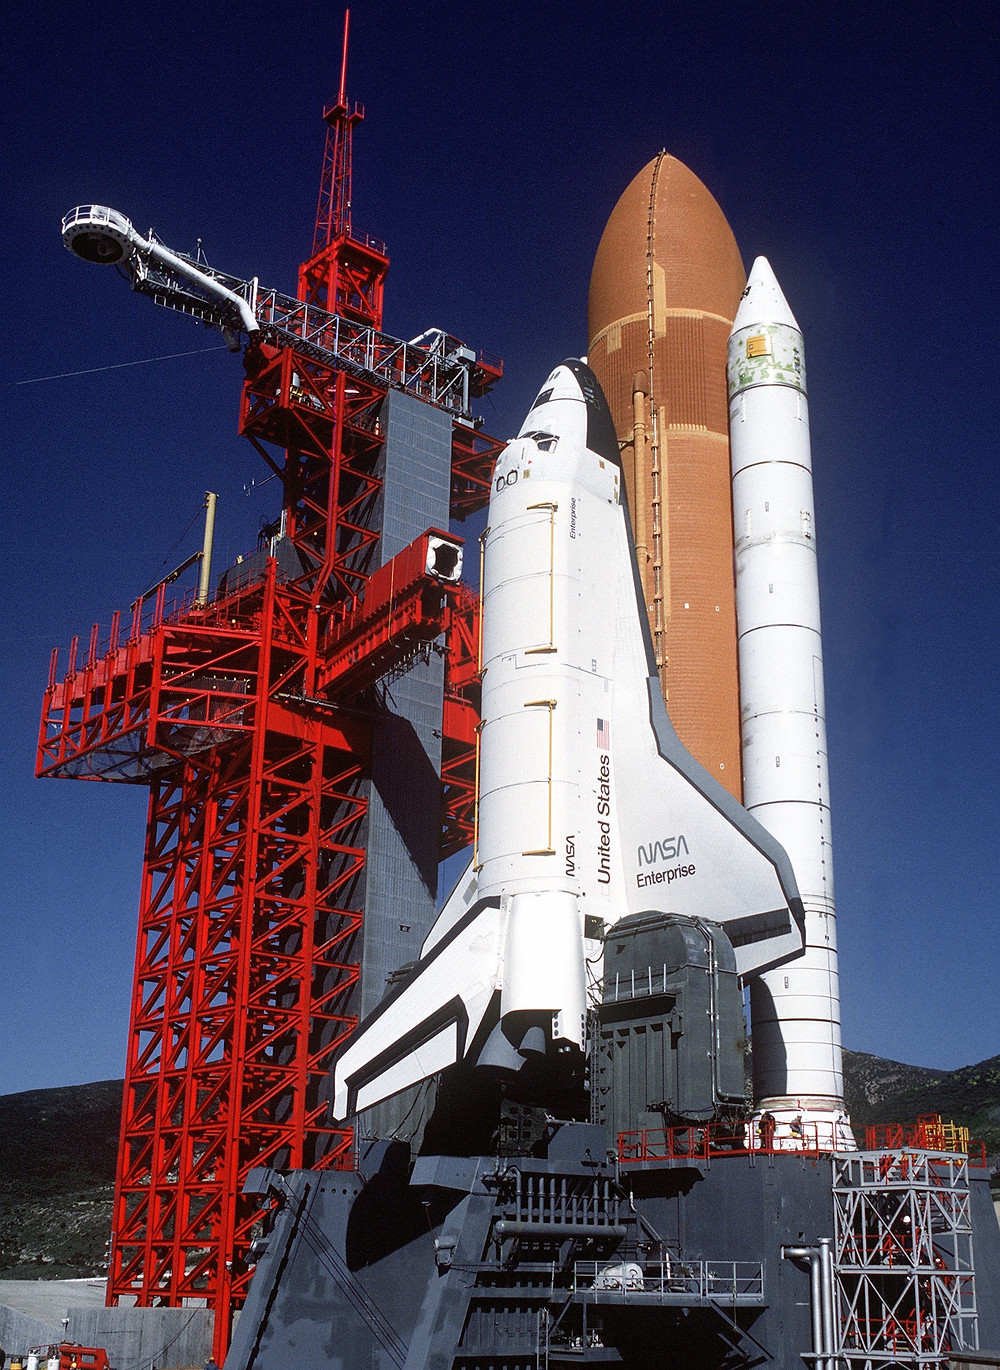 Orbiter Enterprise stacked on the launch pad at Space Launch Complex 6 at Vandenberg Air Force Base